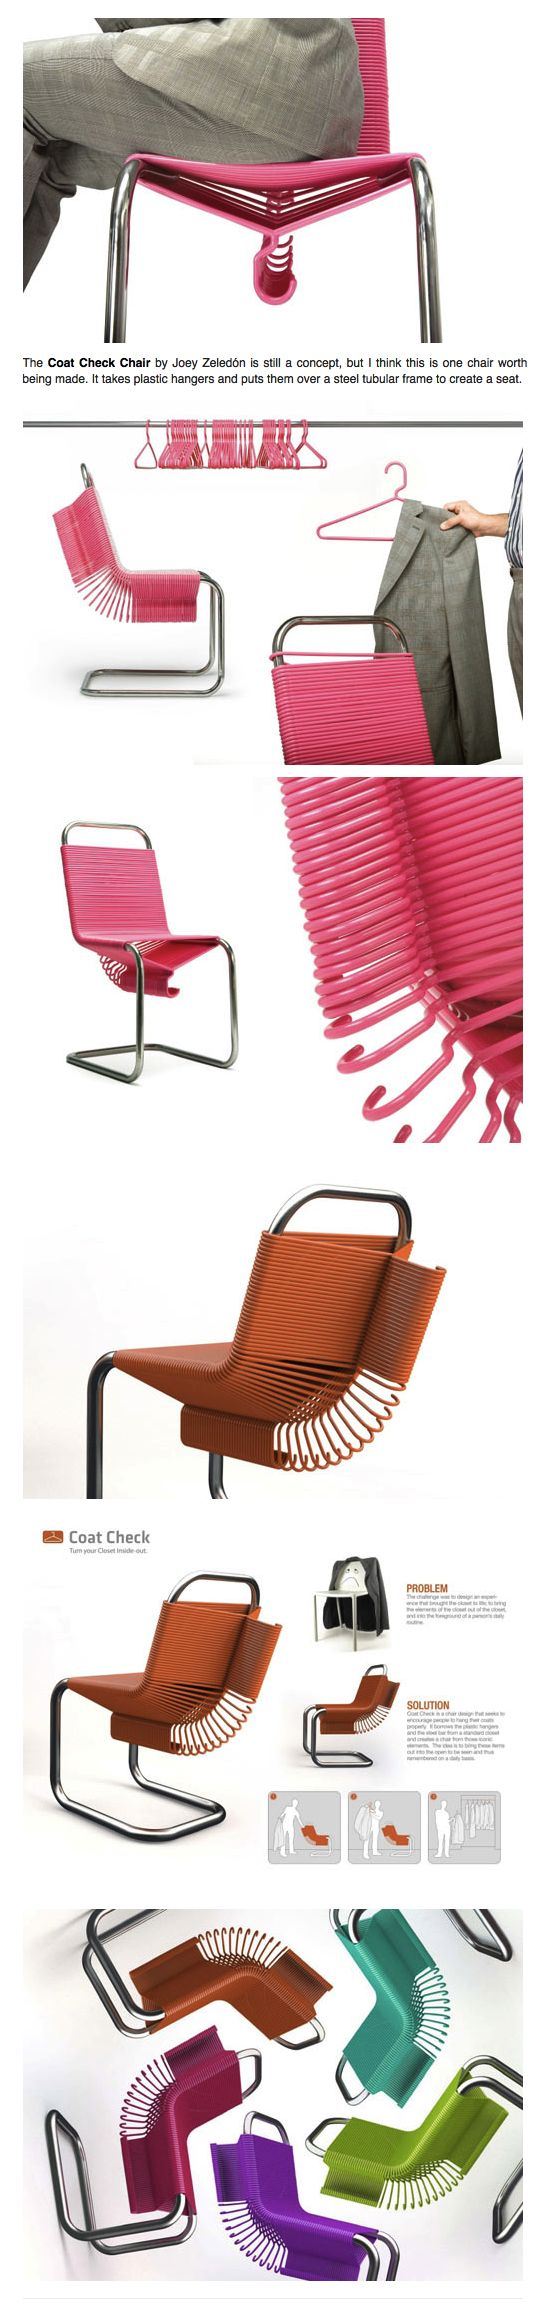 Industrial designer Joey Zeledón created the Coat Check chair. The chair uses plastic hangers set atop a steel frame. (via design-milk.com)